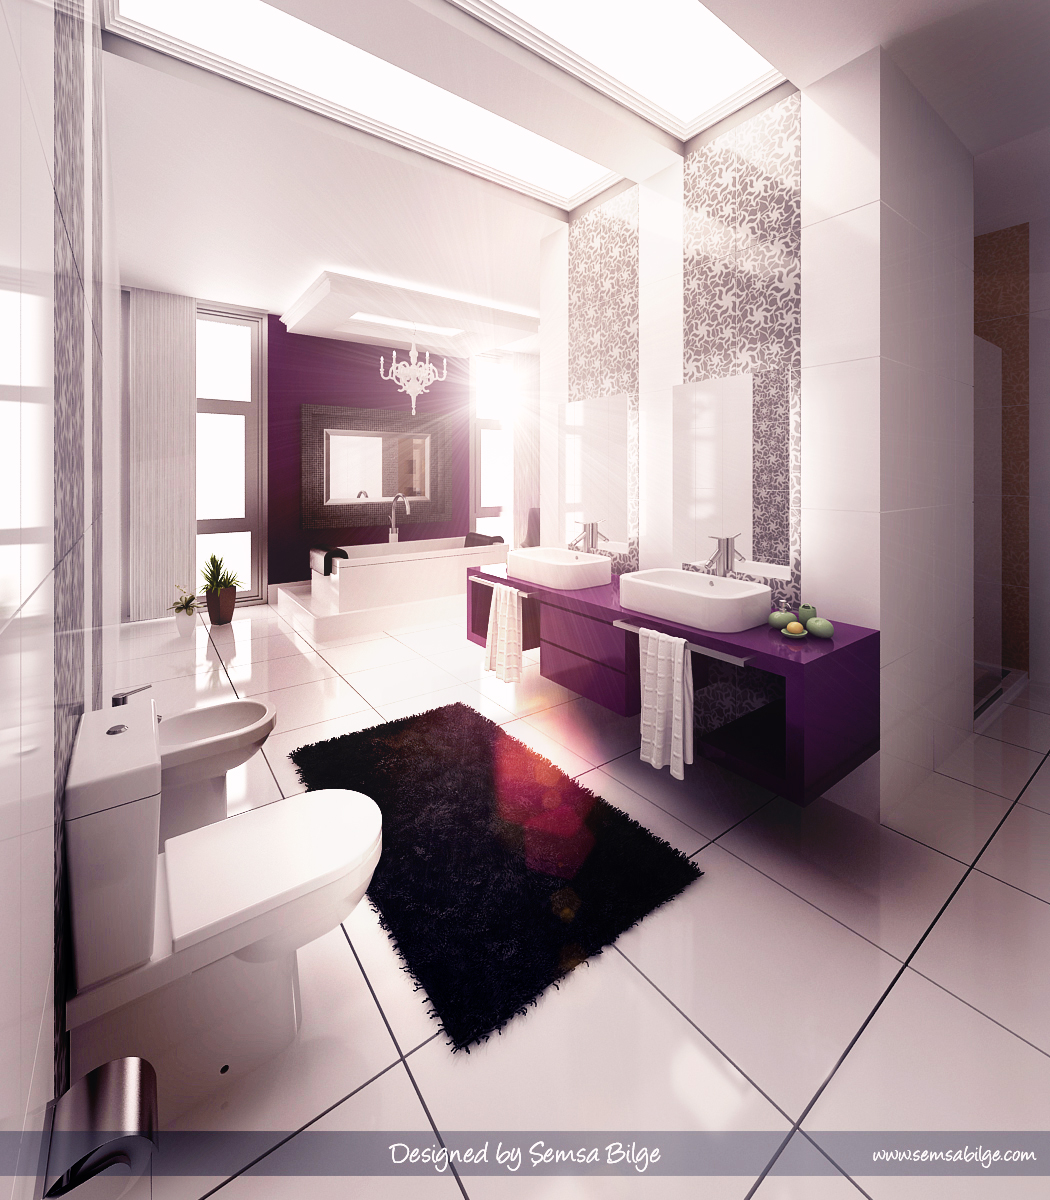 Inspiring bathroom designs for the soul Home bathroom designs